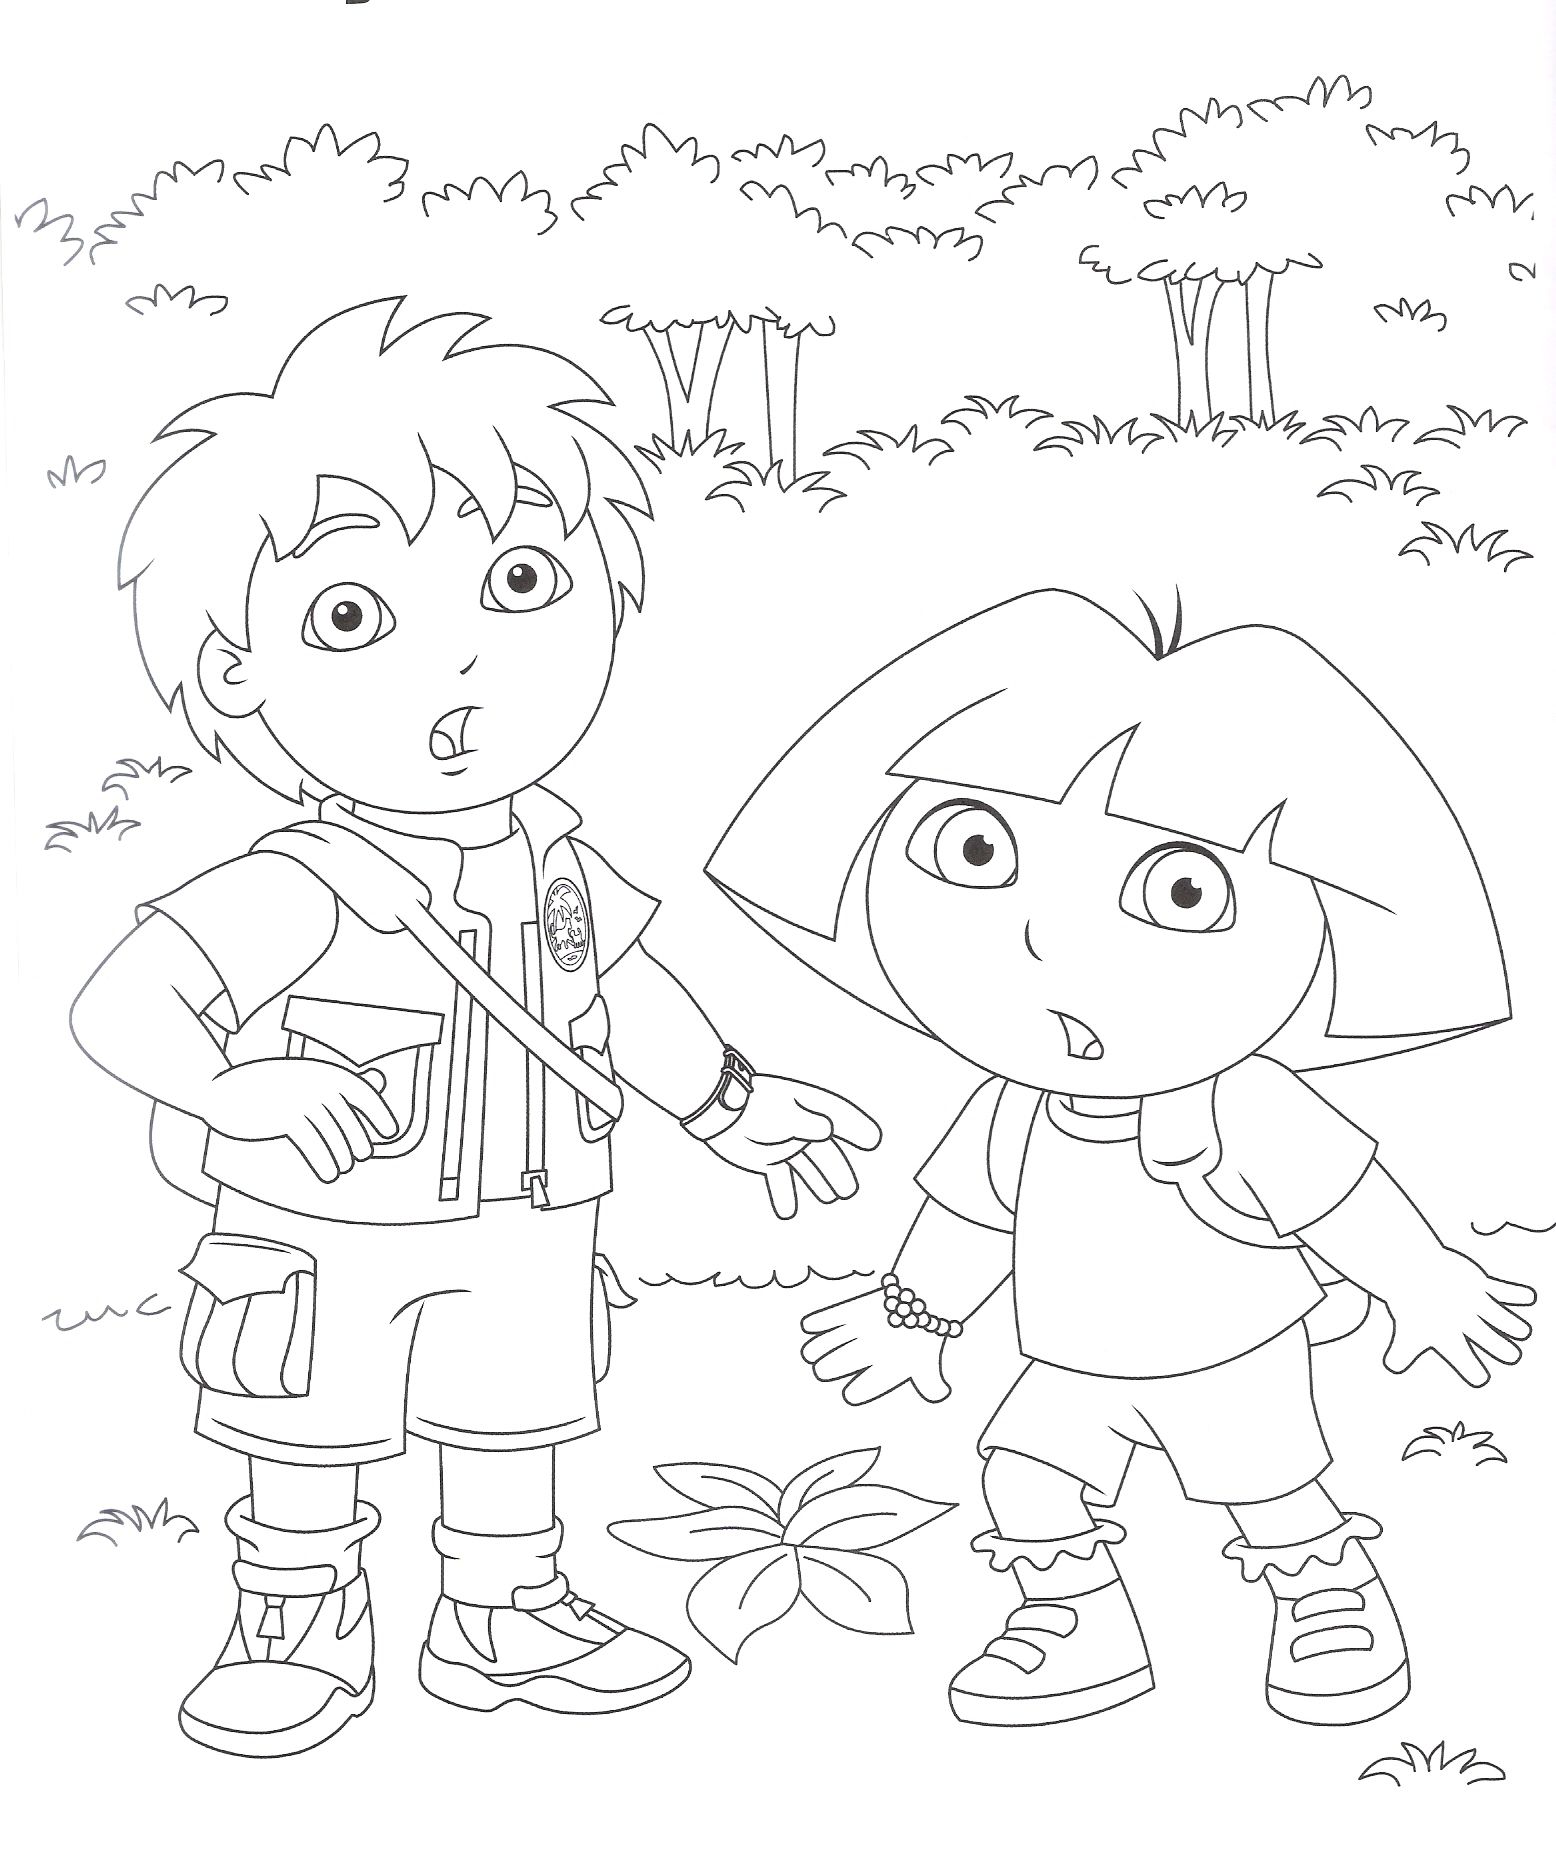 deigo coloring pages - photo#23